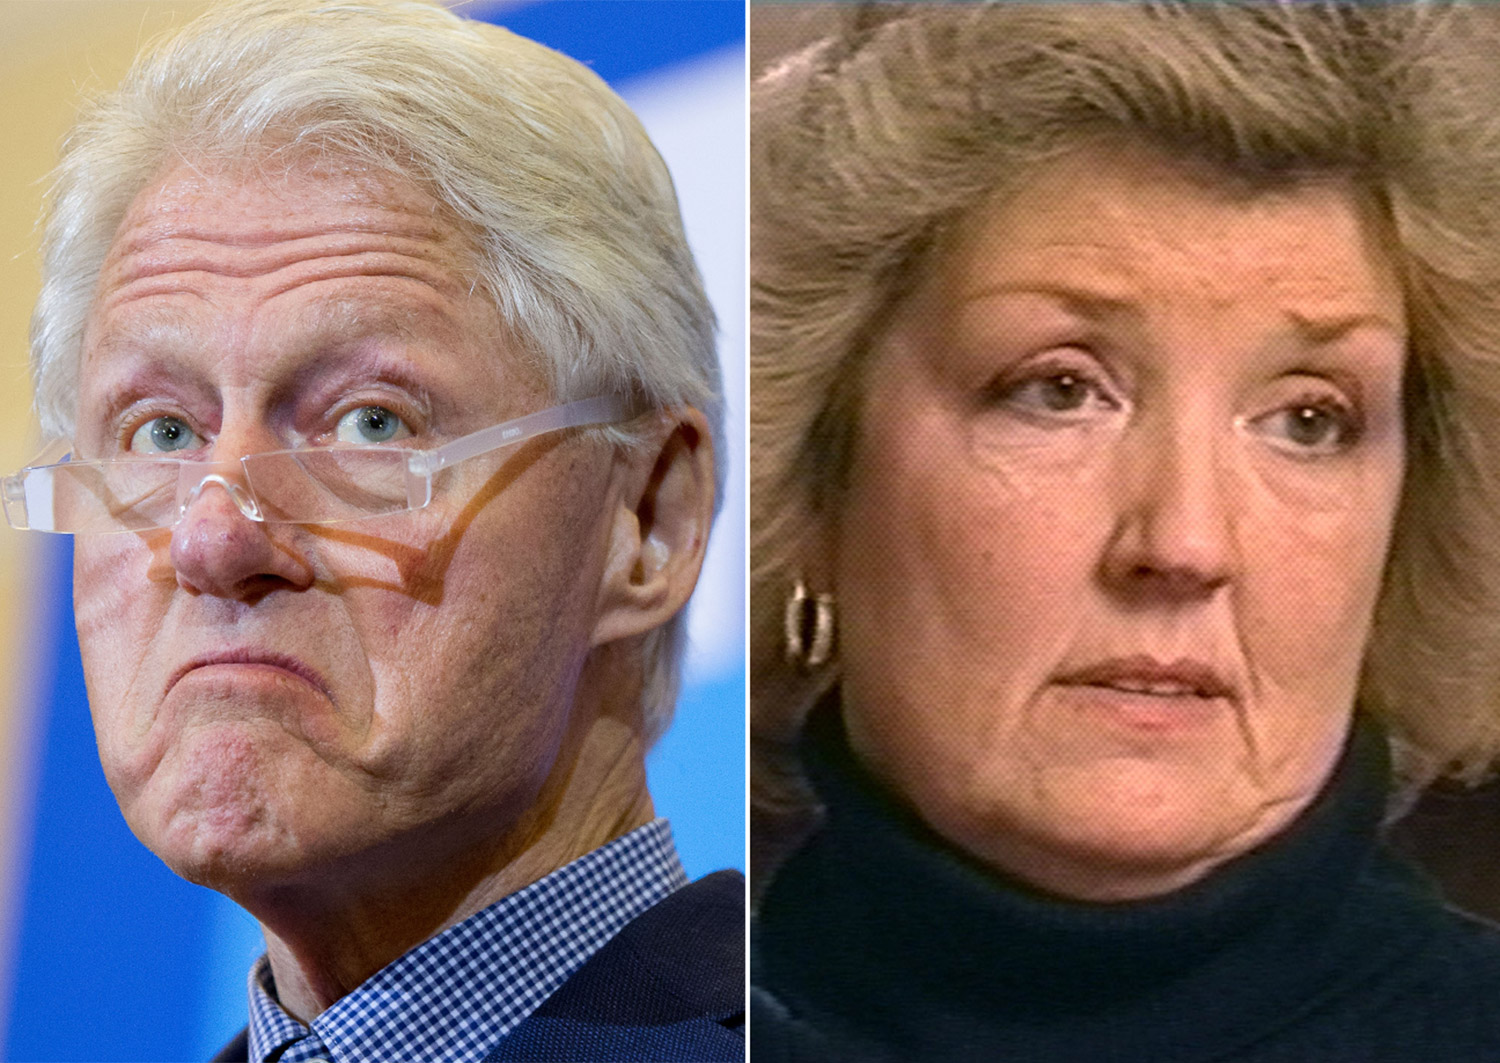 Analysis: Juanita Broaddrick Re: Clinton